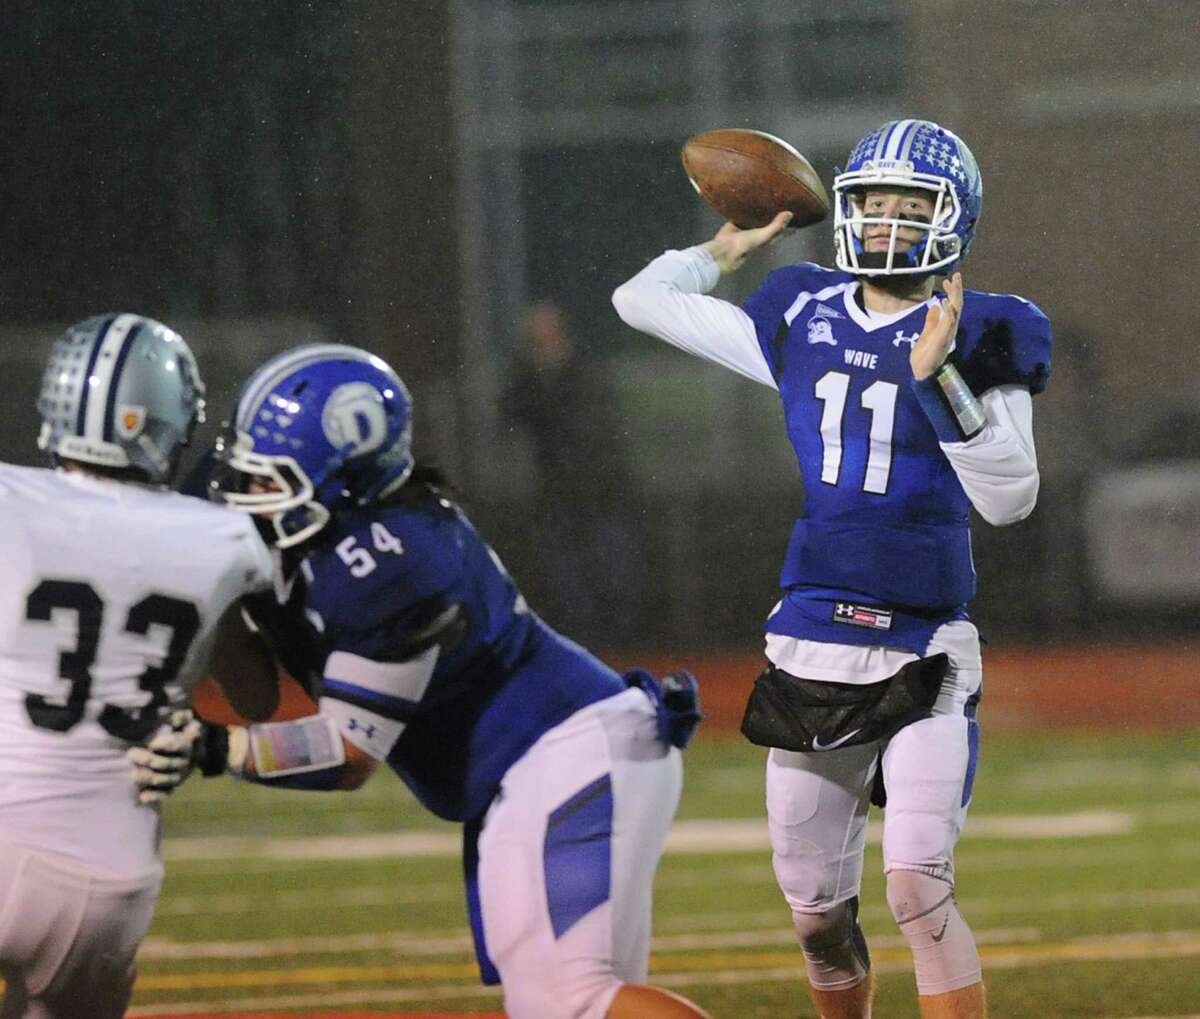 Timmy Graham | Darien | Quarterback Senior completed 223 passes for 3,155 yards and 41 touchdowns (all team records) for the Class LL and FCIAC champion Blue Wave, who also went undefeated with a 12-0 record ... Holds school records for career passing completions (430), career passing yards (5690), career touchdown passes (65) and single-season quarterback rating (134.9) ... CHSCA Class LL offense, All-FCIAC first team offense ... Member of USA Today Connecticut Team.